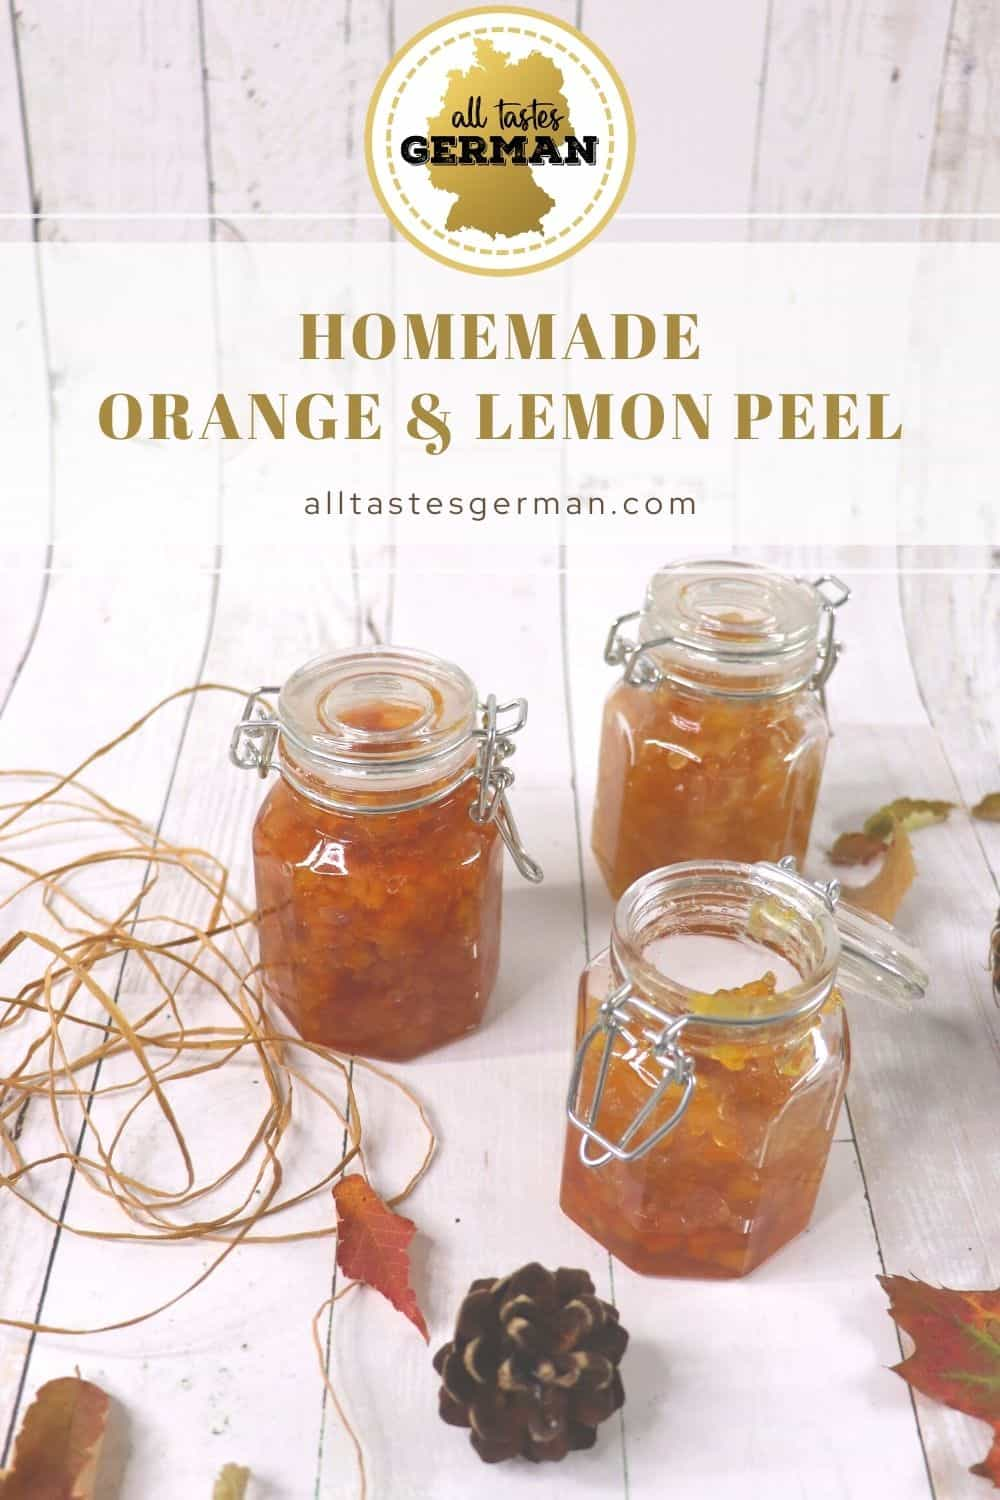 Homemade Orange and Lemon Peel